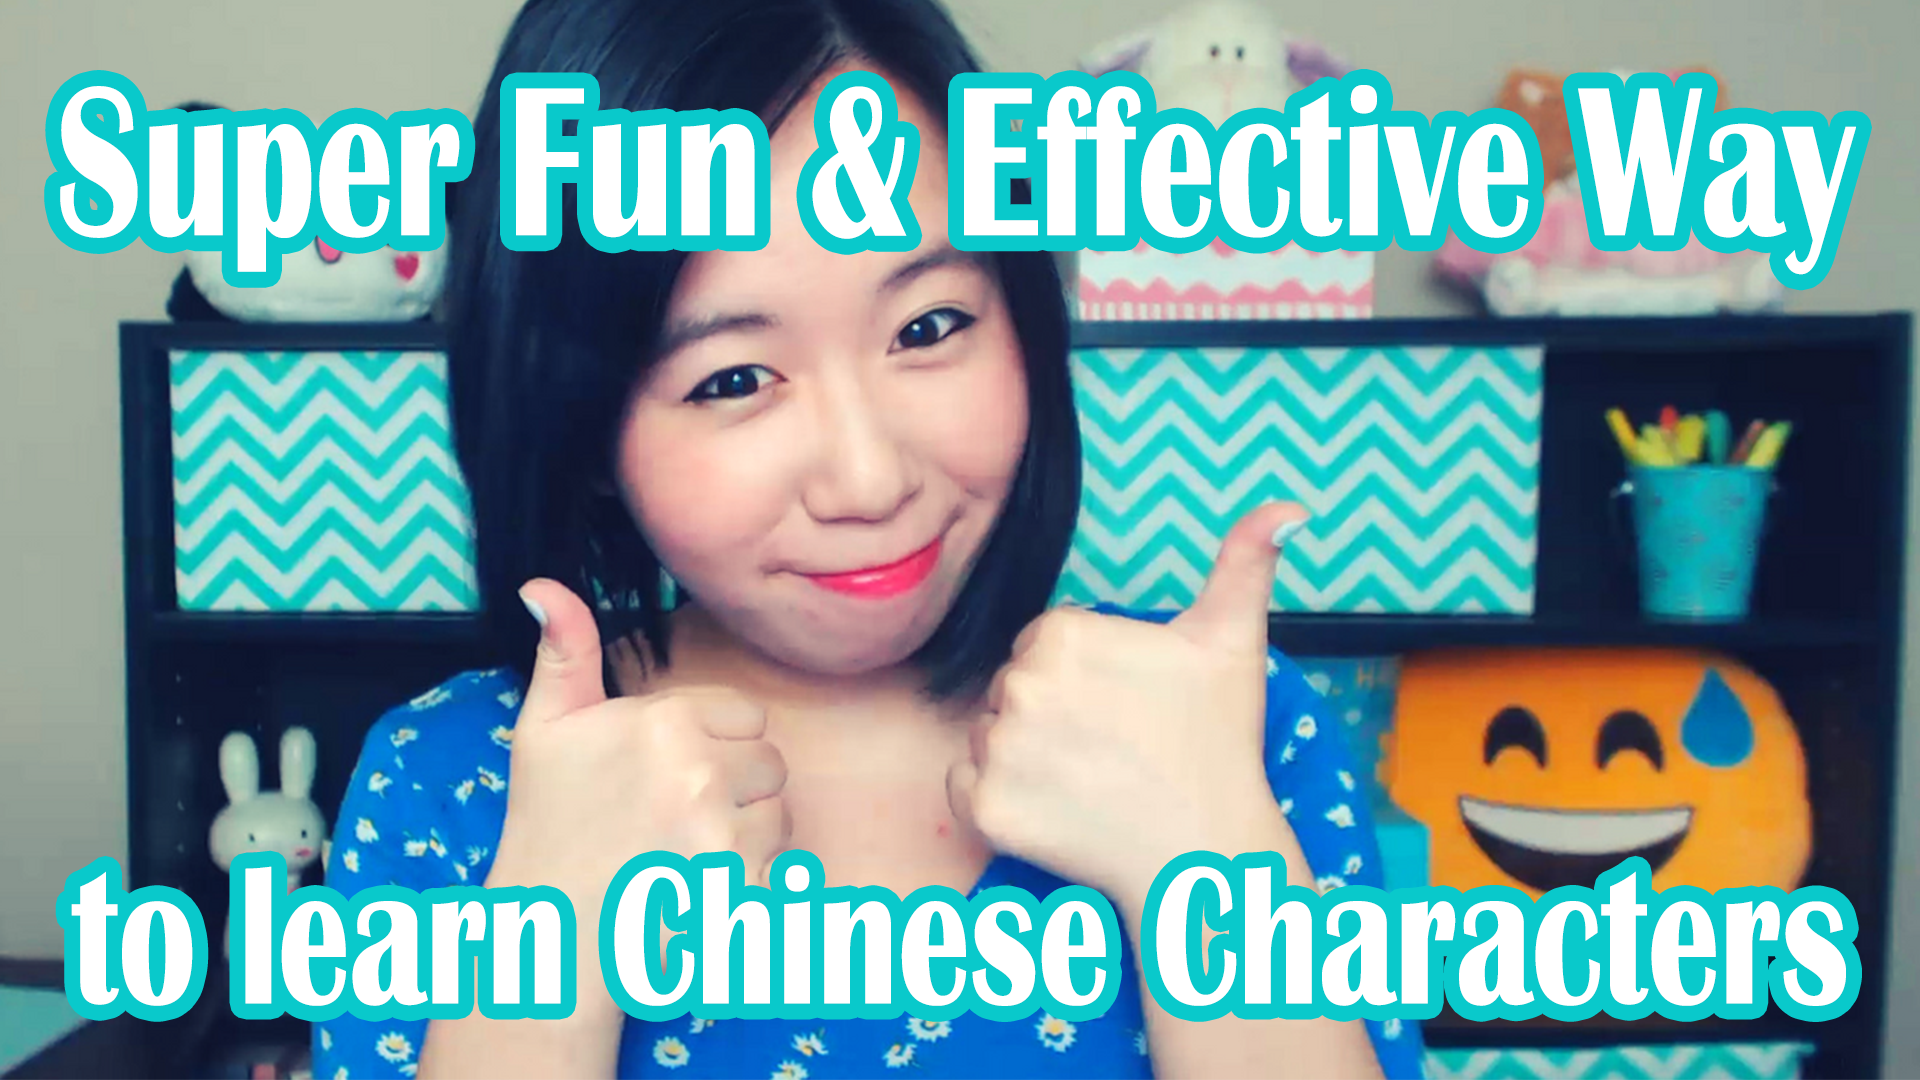 Super Fun & Effective Way to Learn Chinese Characters! – Chinese Character Lesson Walk-Through